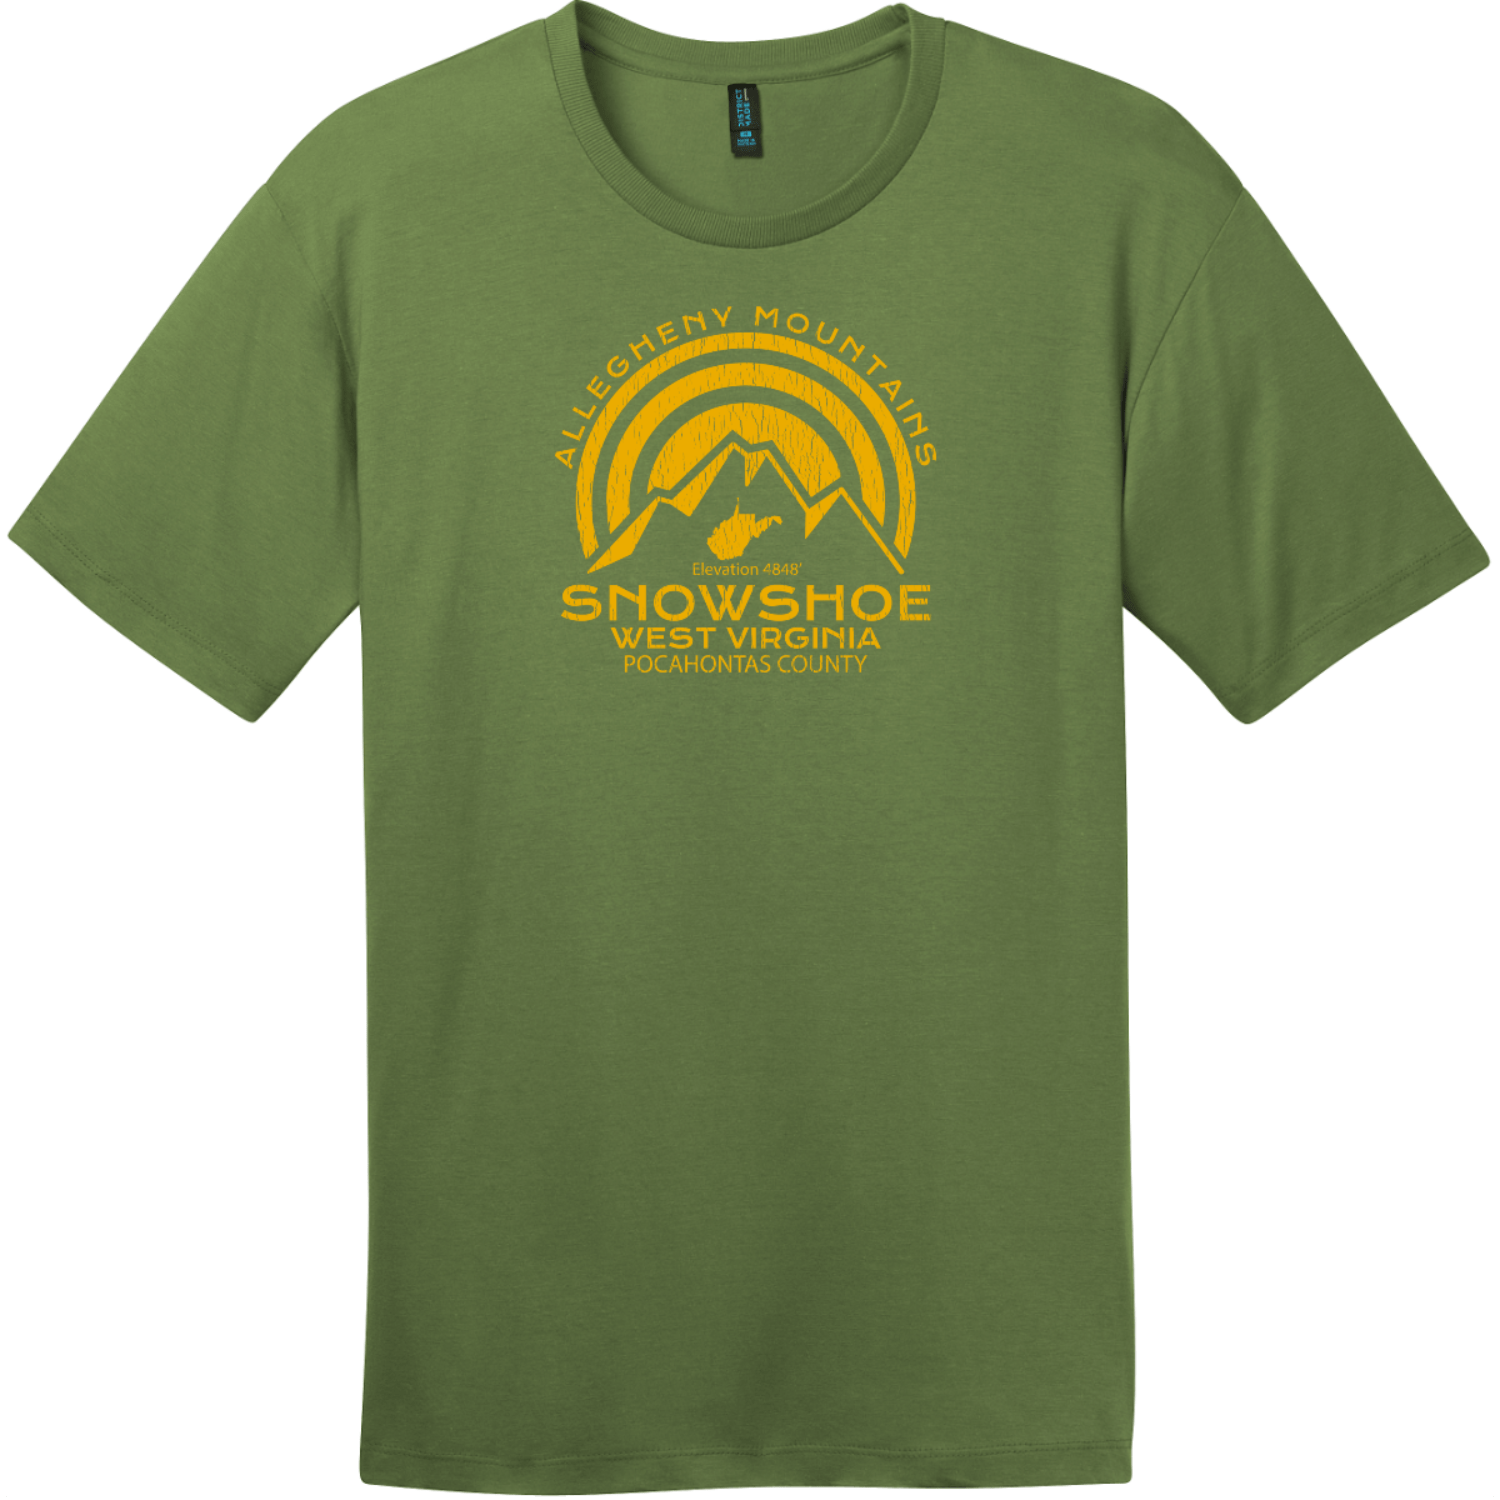 Snowshoe West Virginia Mountain T-Shirt Fresh Fatigue District Perfect Weight Tee DT104